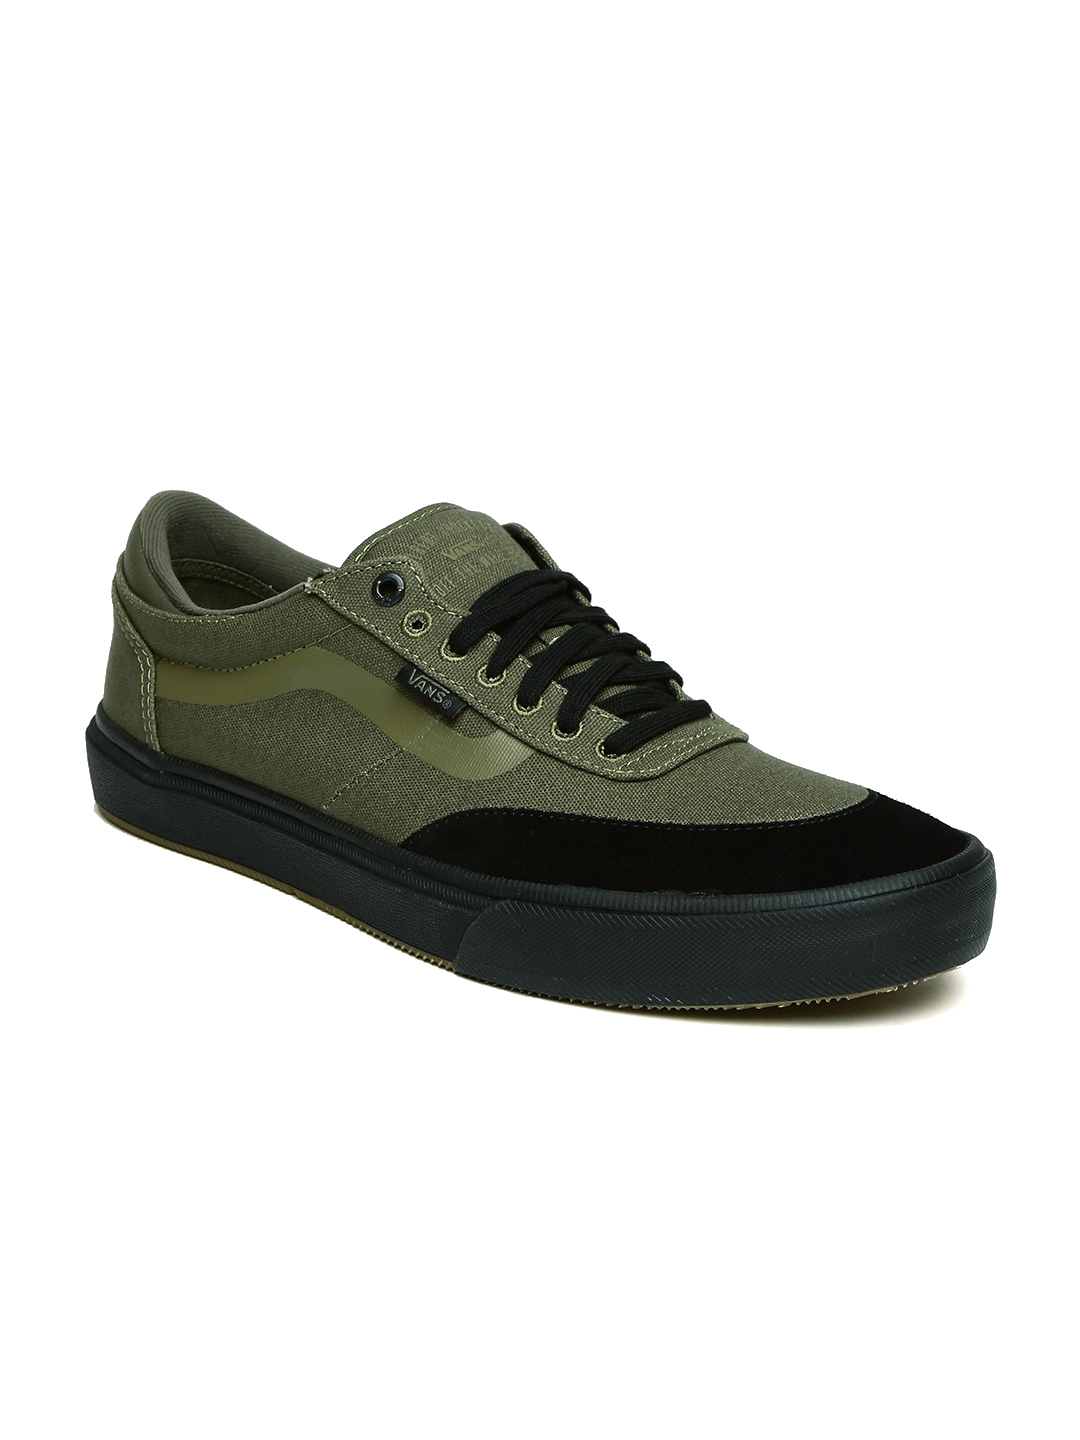 dc9a85b331c597 Buy Vans Men Olive Green Gilbert Crockett 2 Pro Skate Shoes - Casual ...